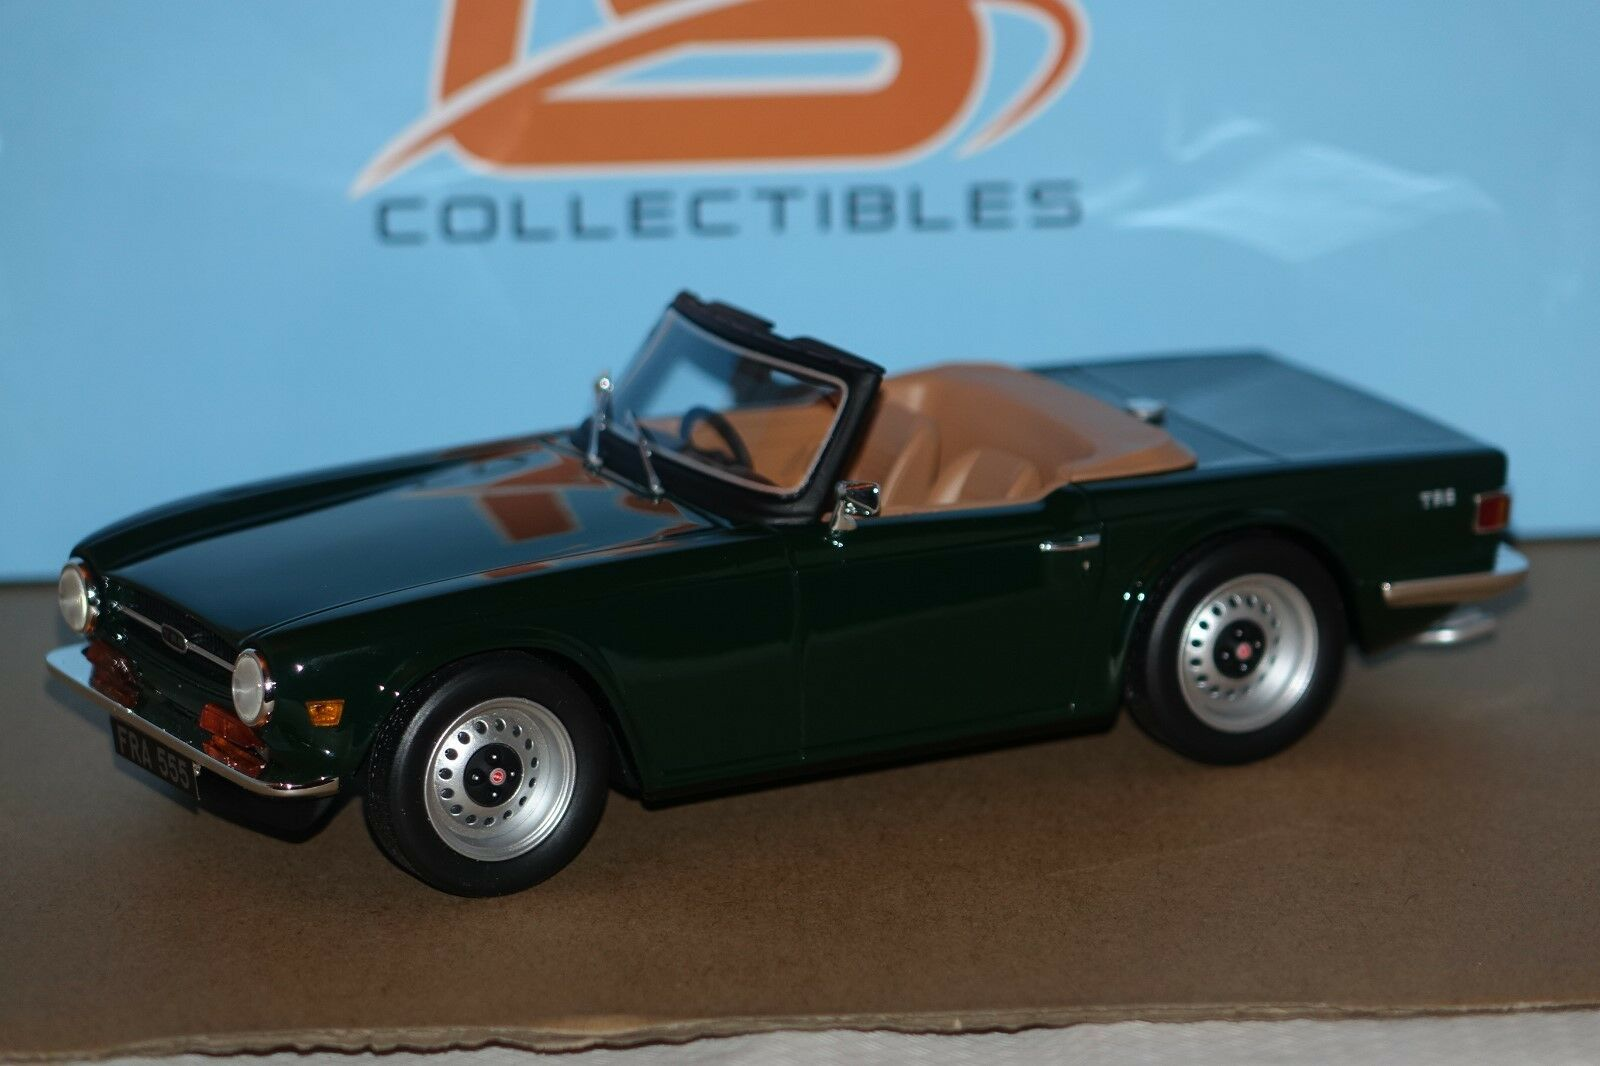 TRIUMPH tr6 VERDE 1:18 resin LS Collectibles NUOVO & OVP ls002a